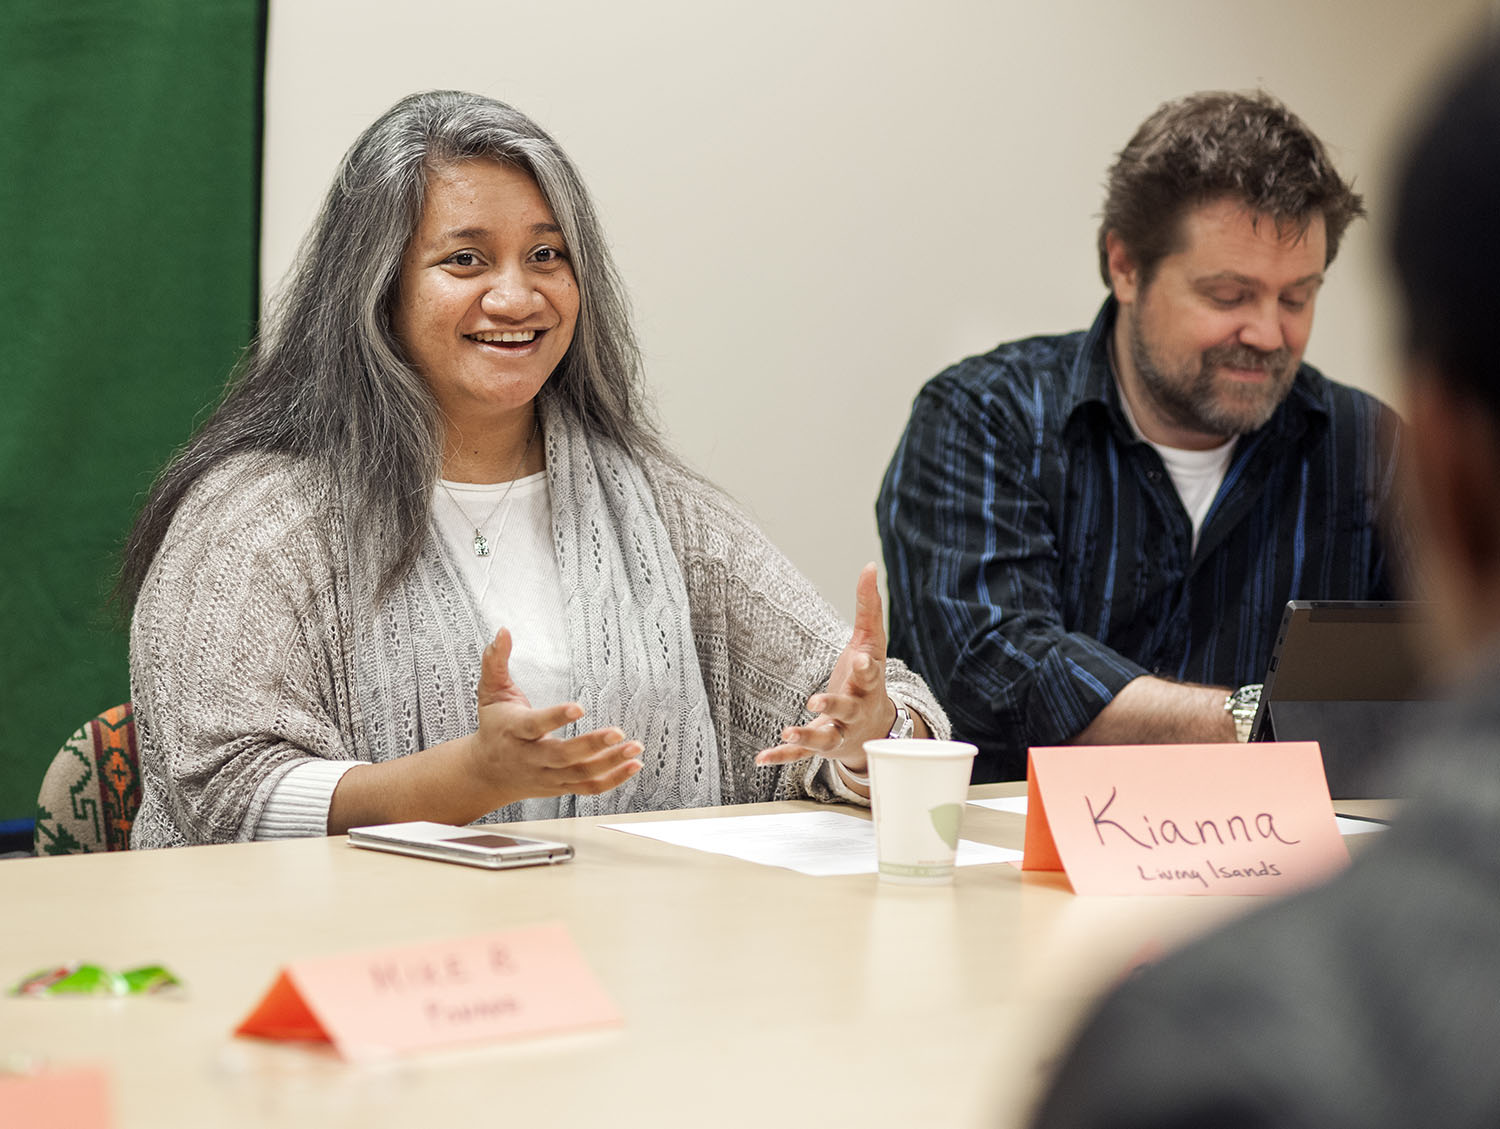 <p>Kianna Angelo, a Marshallese living in Vancouver, Washington, is the executive director and founder of the nonprofit organization Living Islands.</p>